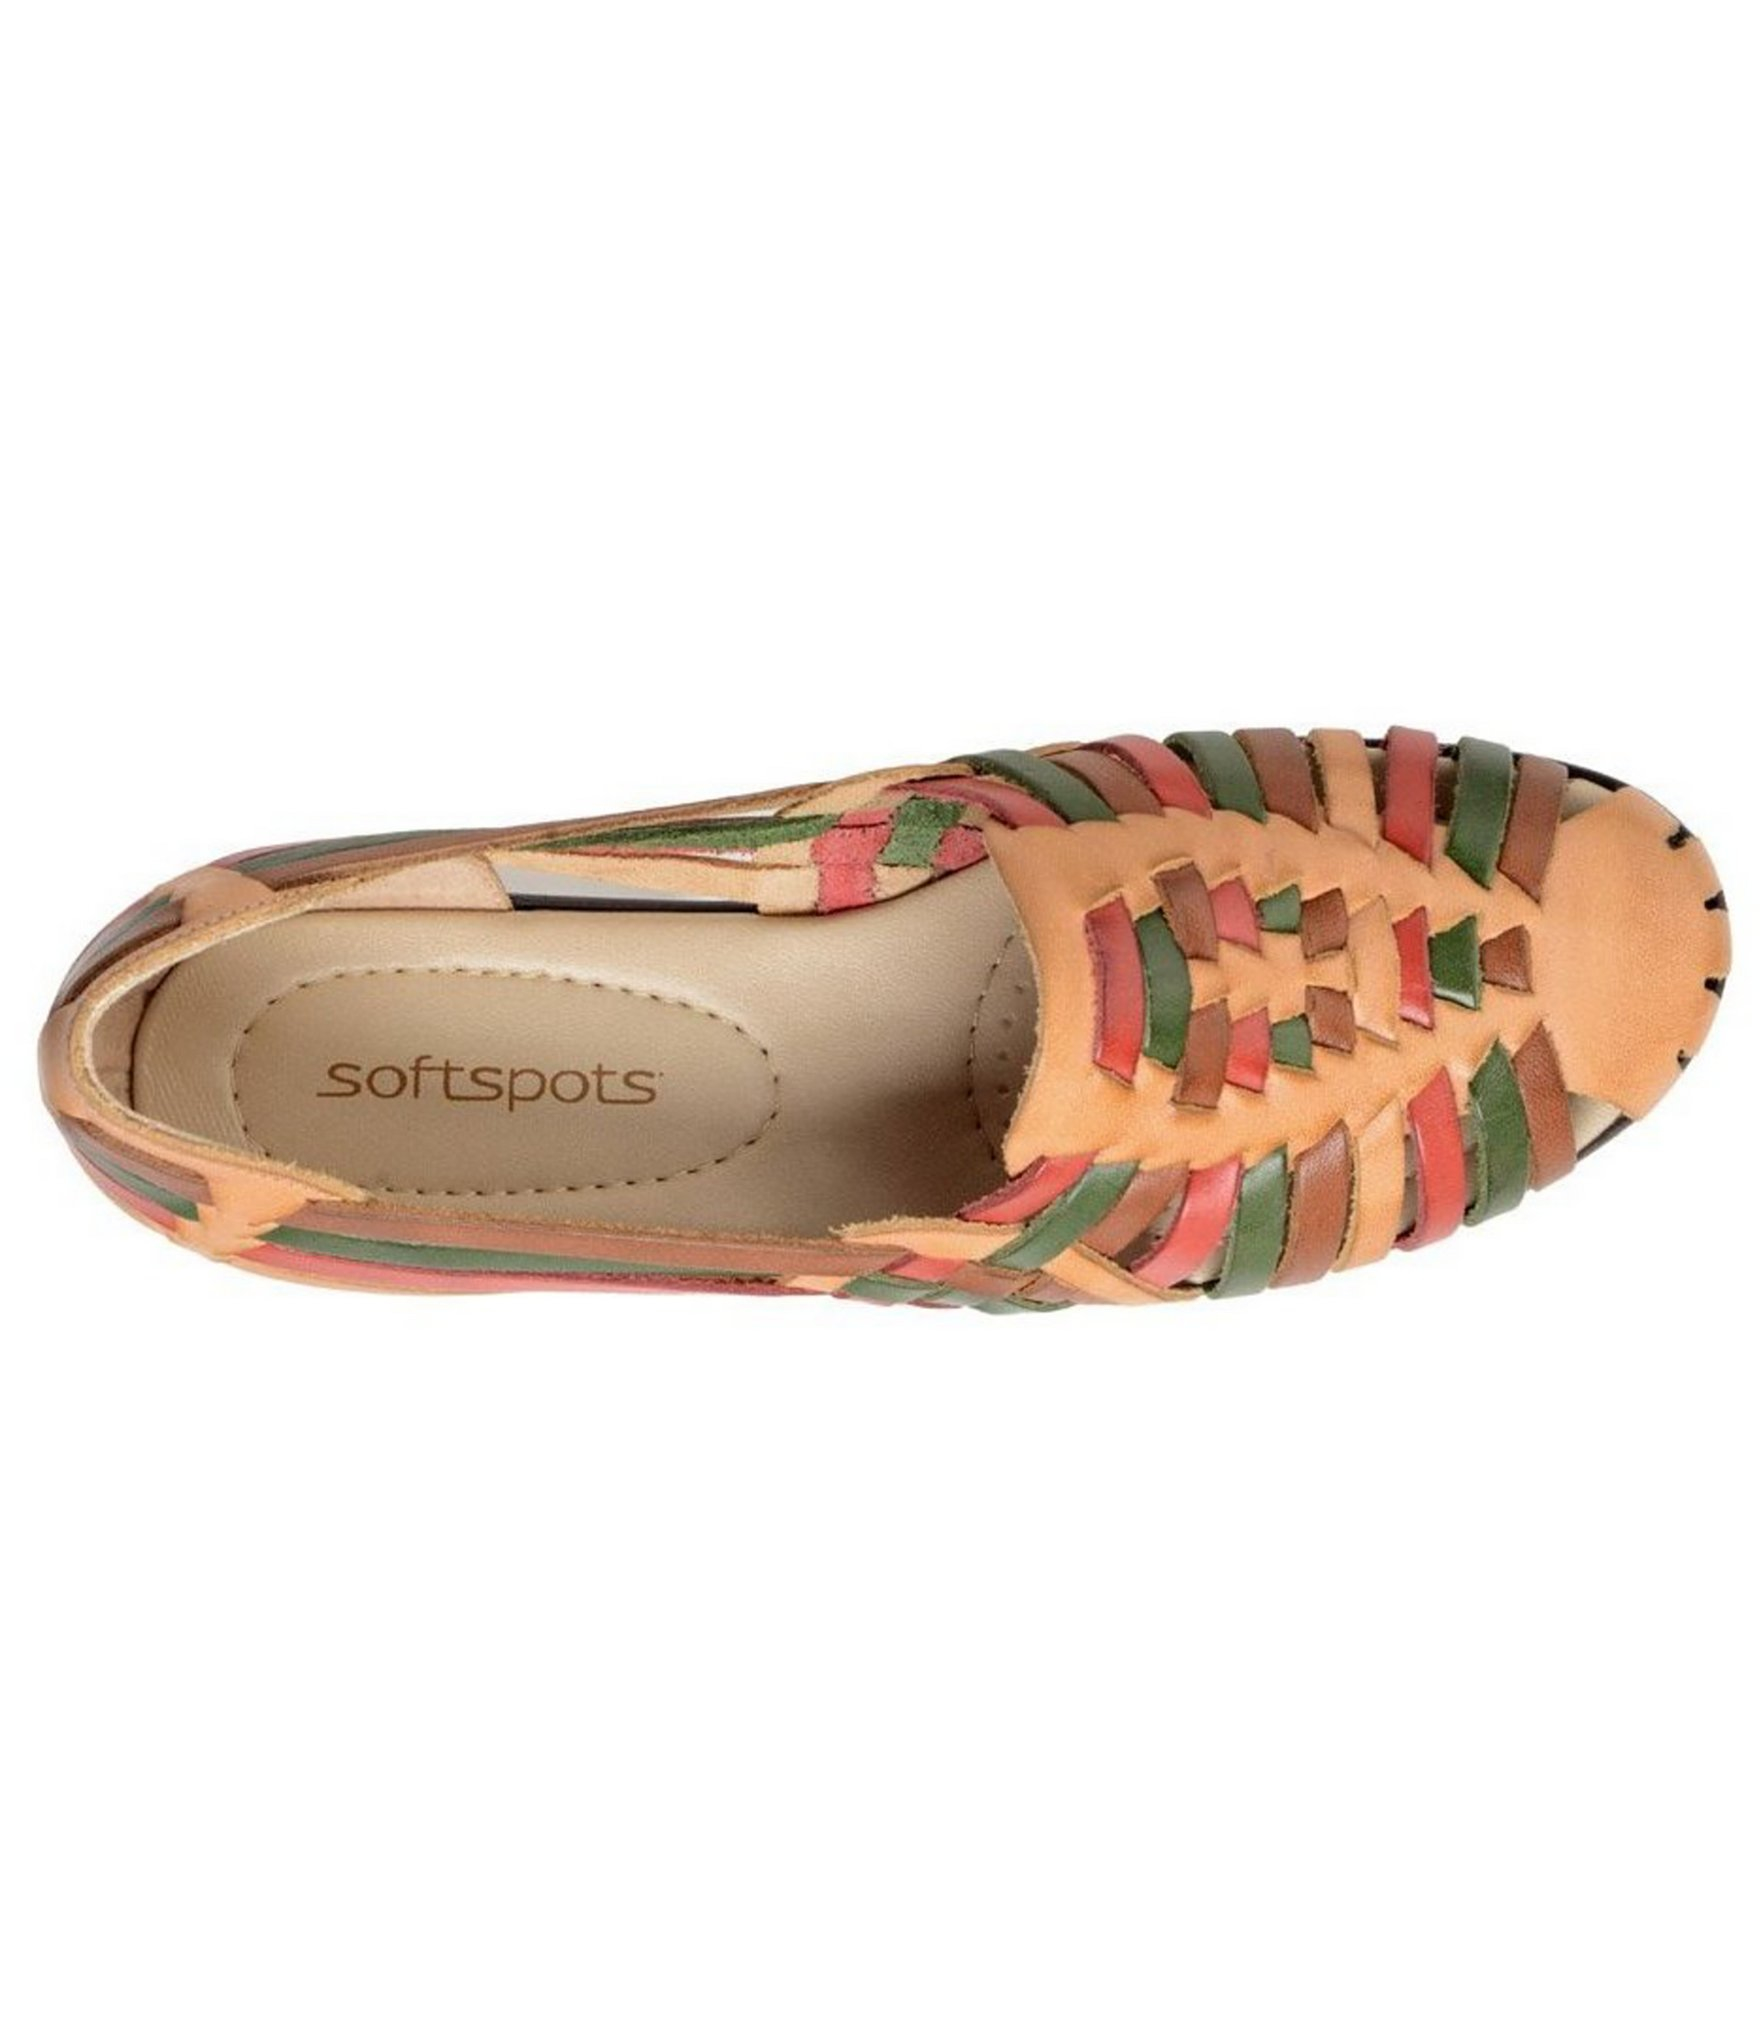 Softspots Trinidad Colorblocked Huarache Sandals Lyst